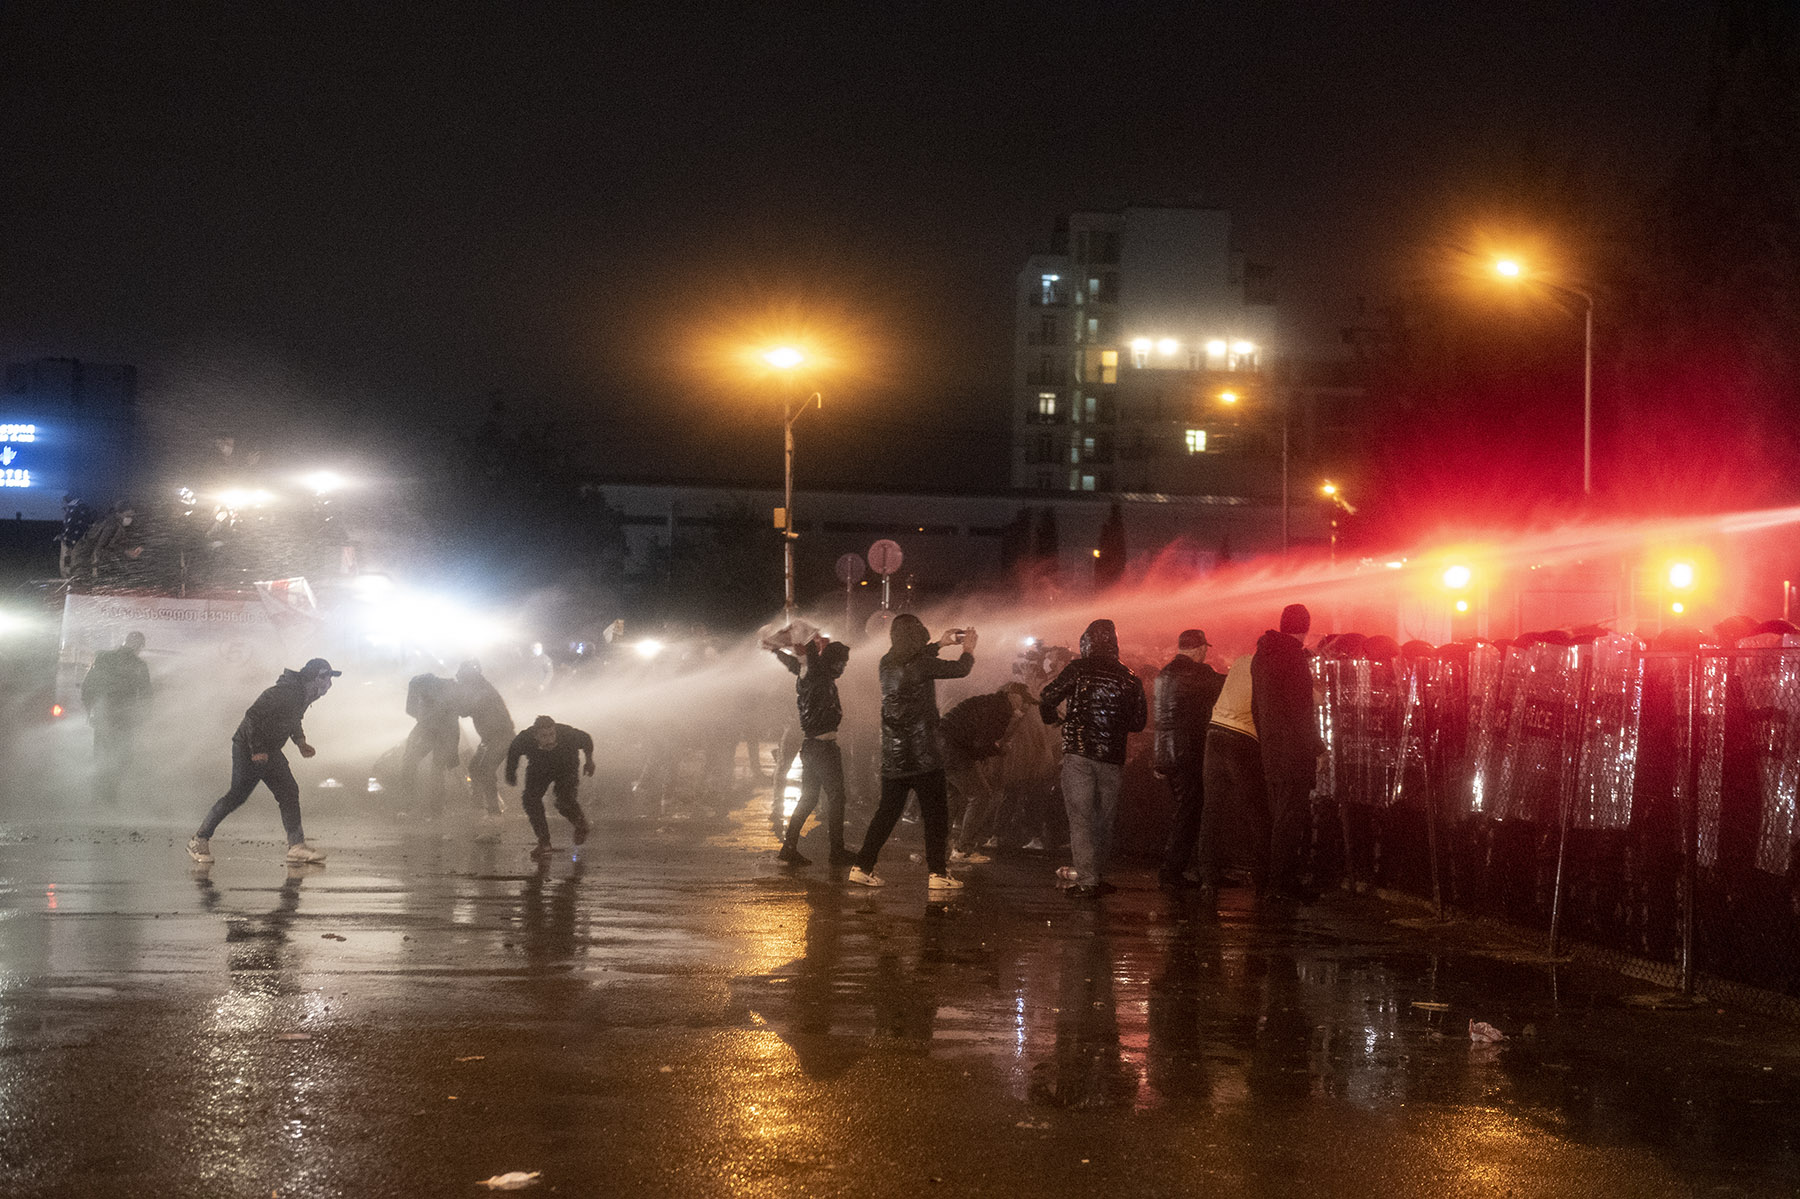 Police deployed water cannons several times throughout the night. Photo:MariamNikuradze/OCMedia.